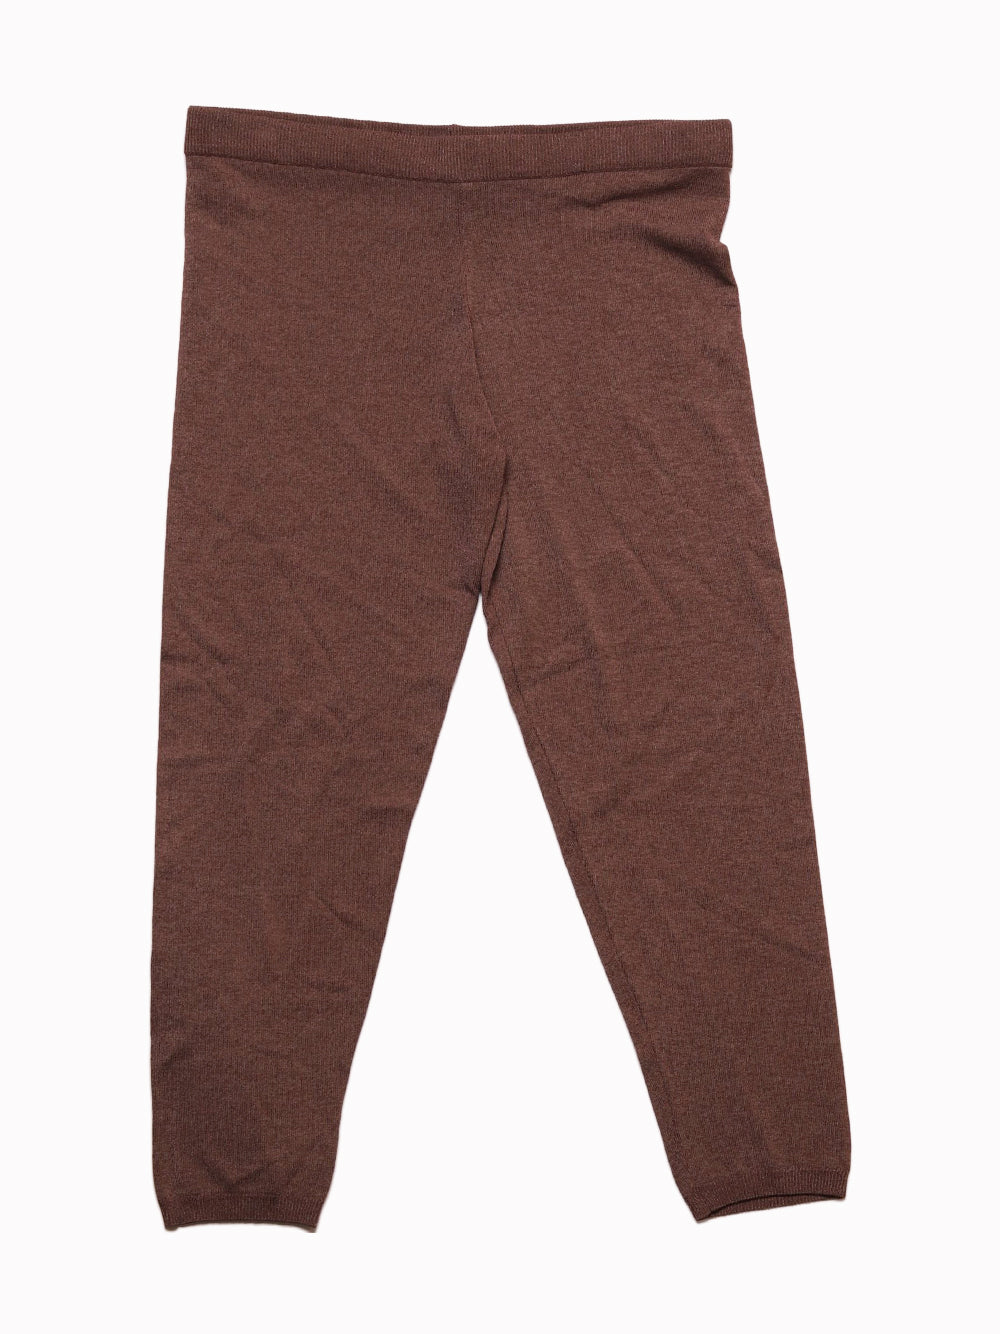 Front photo of Preloved Anis White Brown Woman's leggings - size 10/M